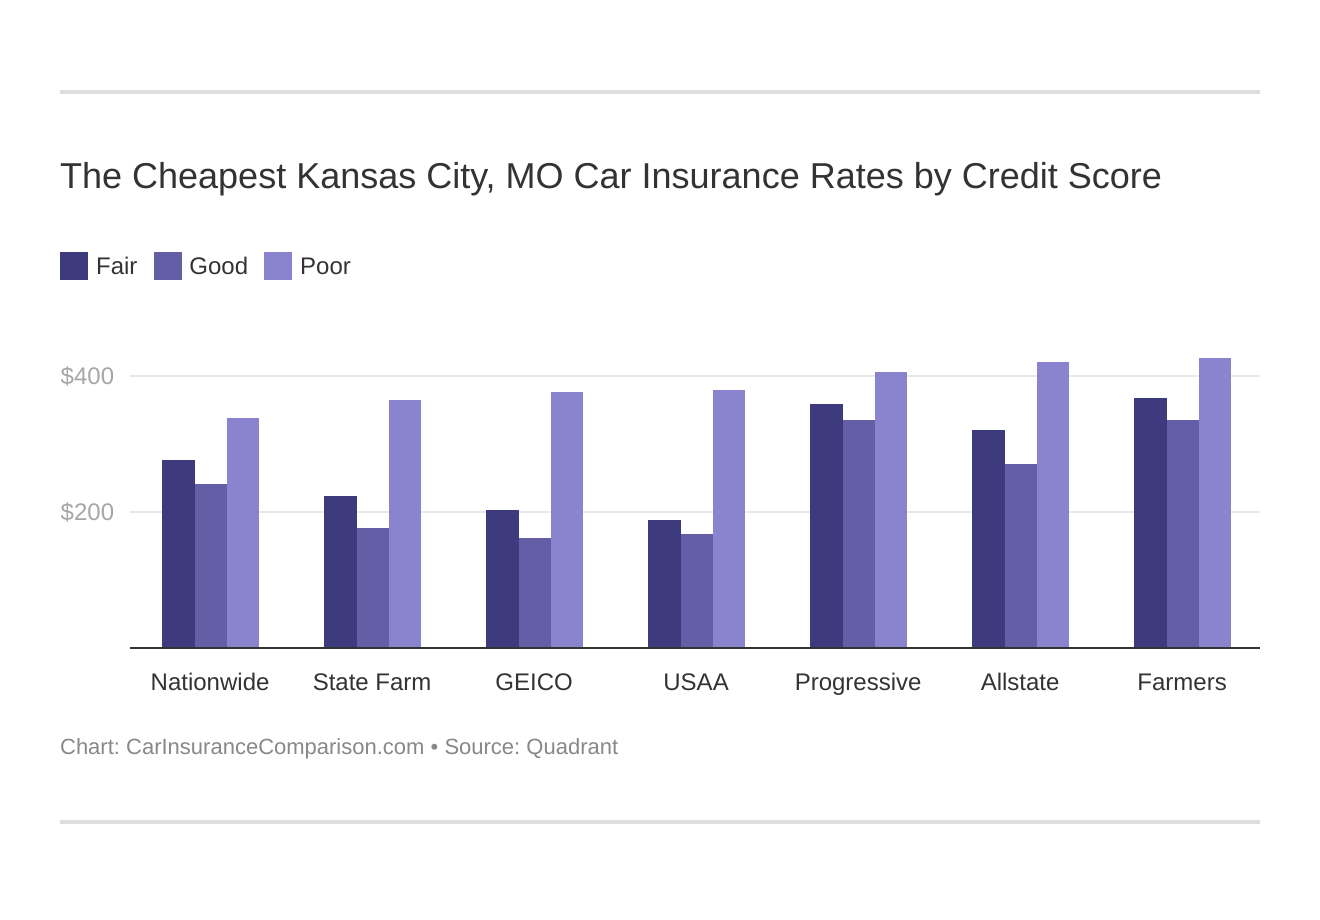 The Cheapest Kansas City, MO Car Insurance Rates by Credit Score